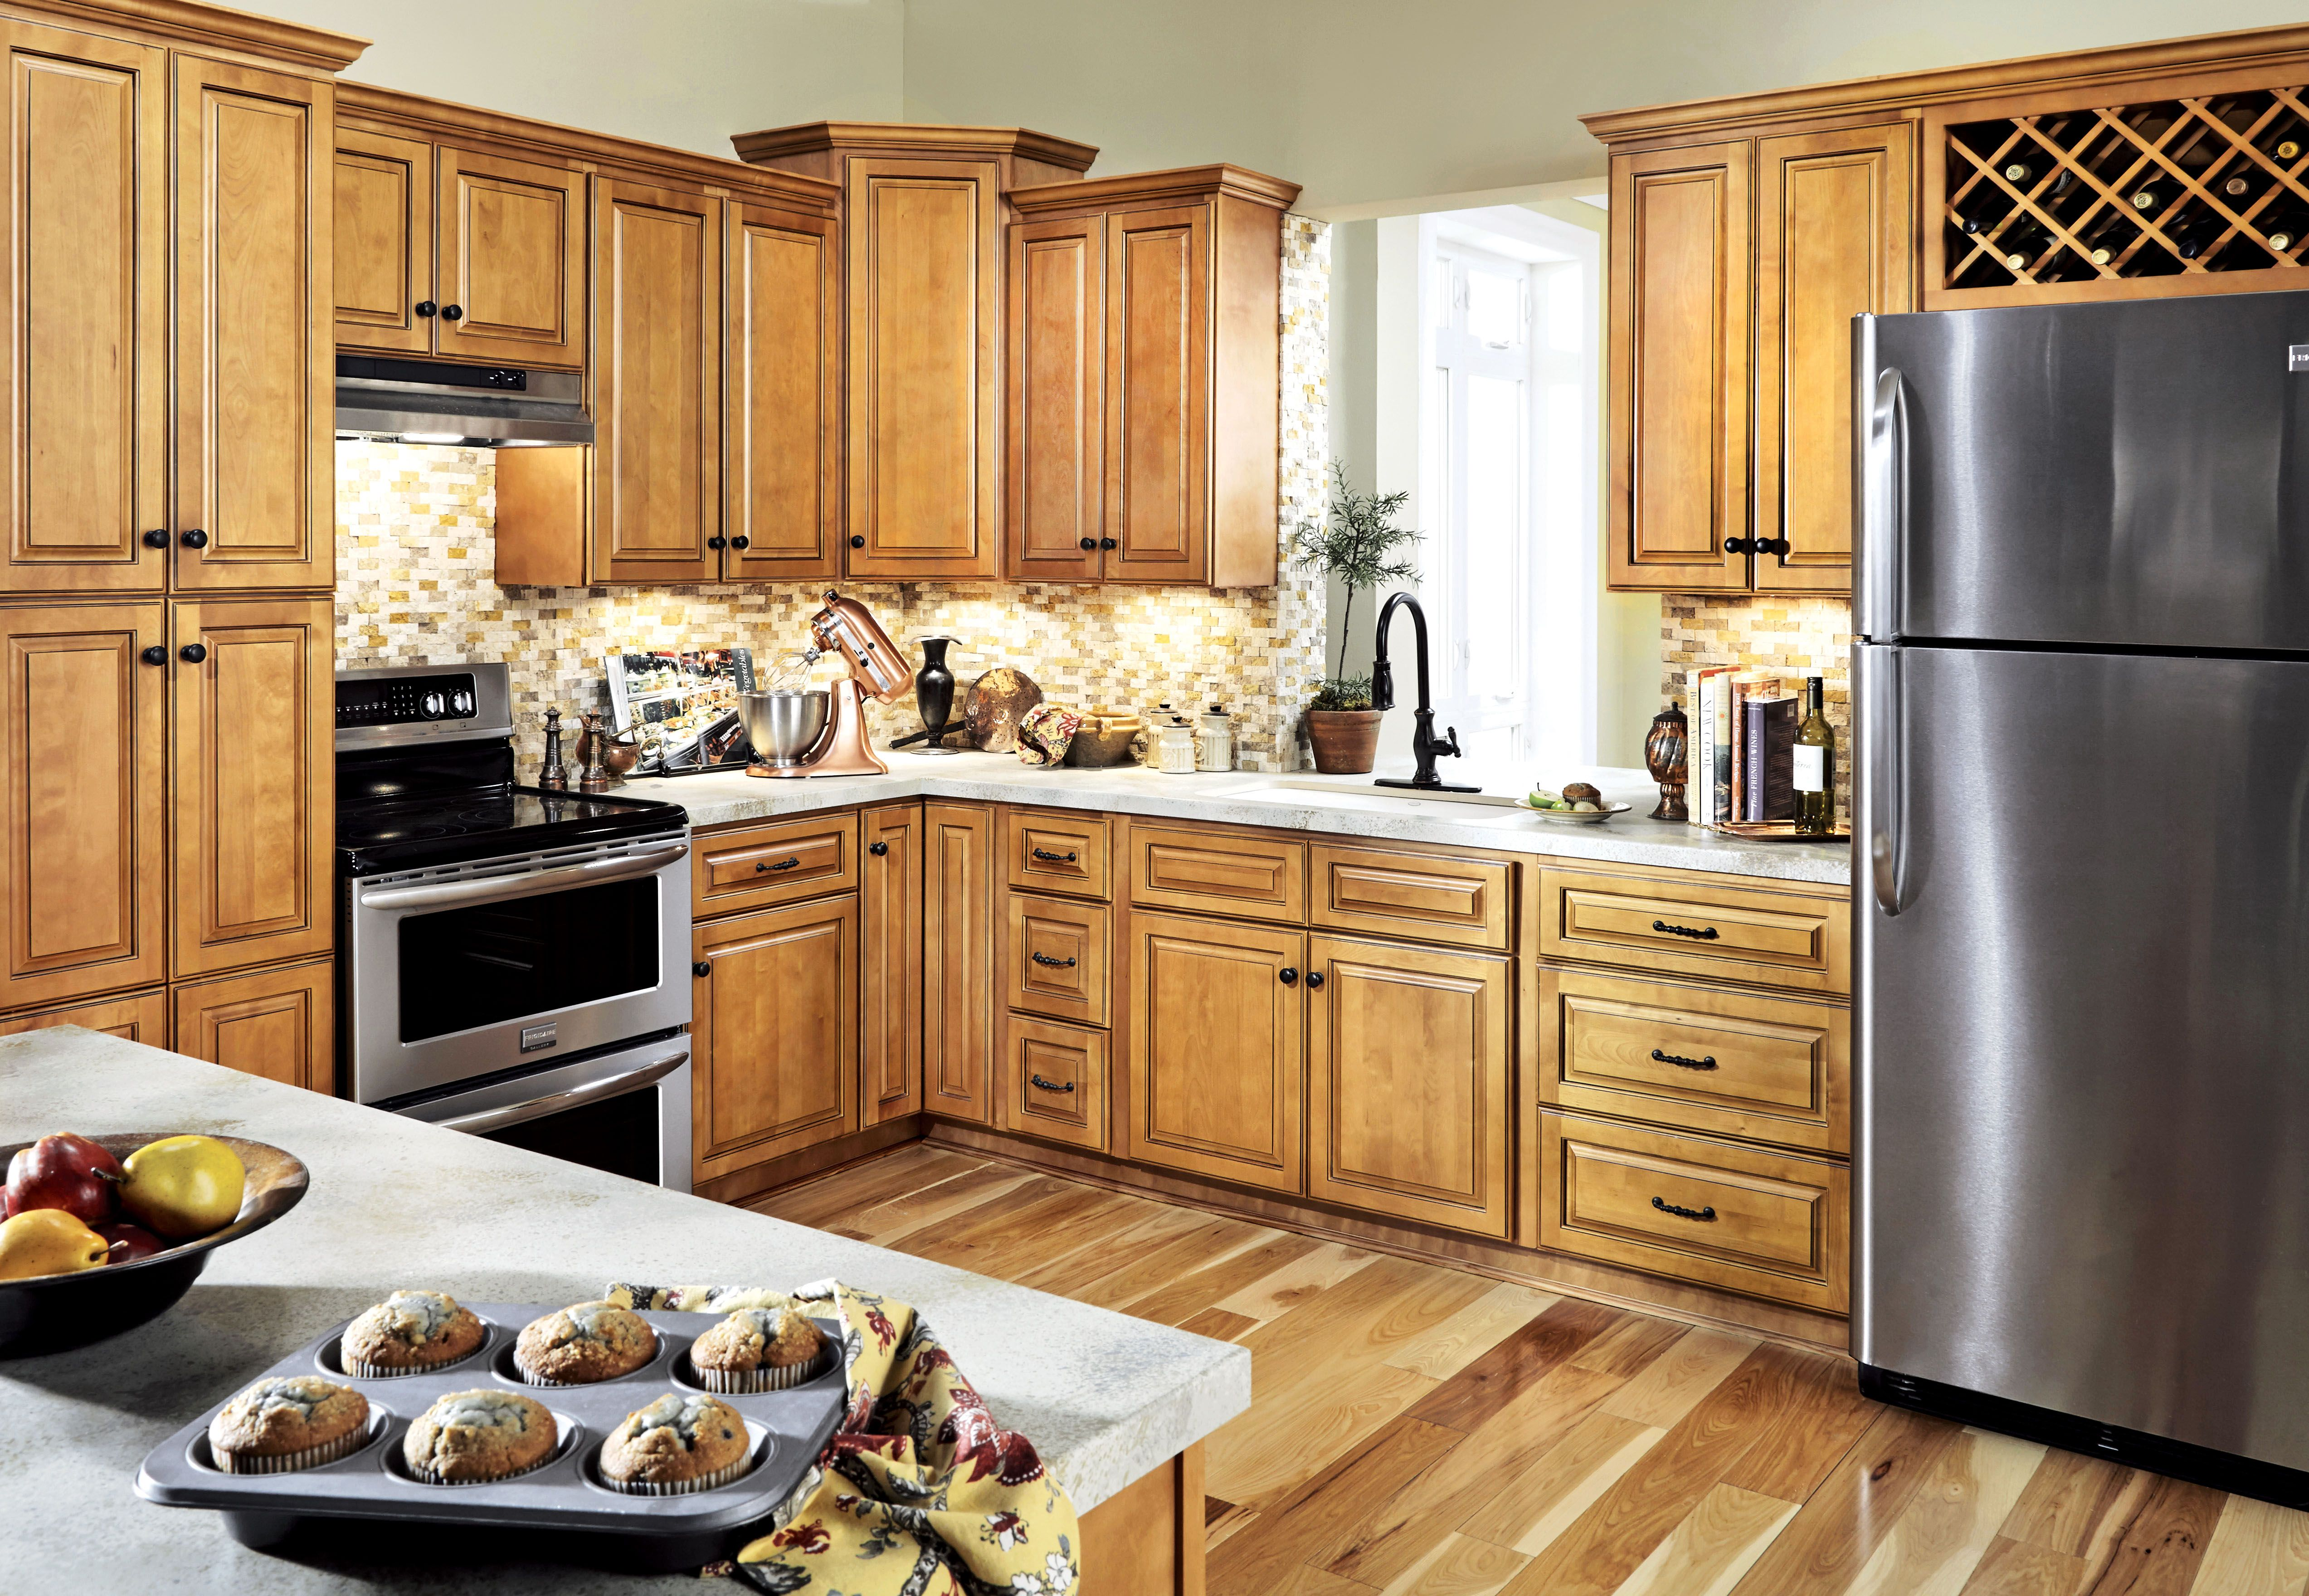 Valentines Day Sale Begins February 8th And Ends On The 15th Cabinets To Go Is Selling Palm Beach Da Cabinets To Go Raised Panel Cabinets Free Kitchen Design